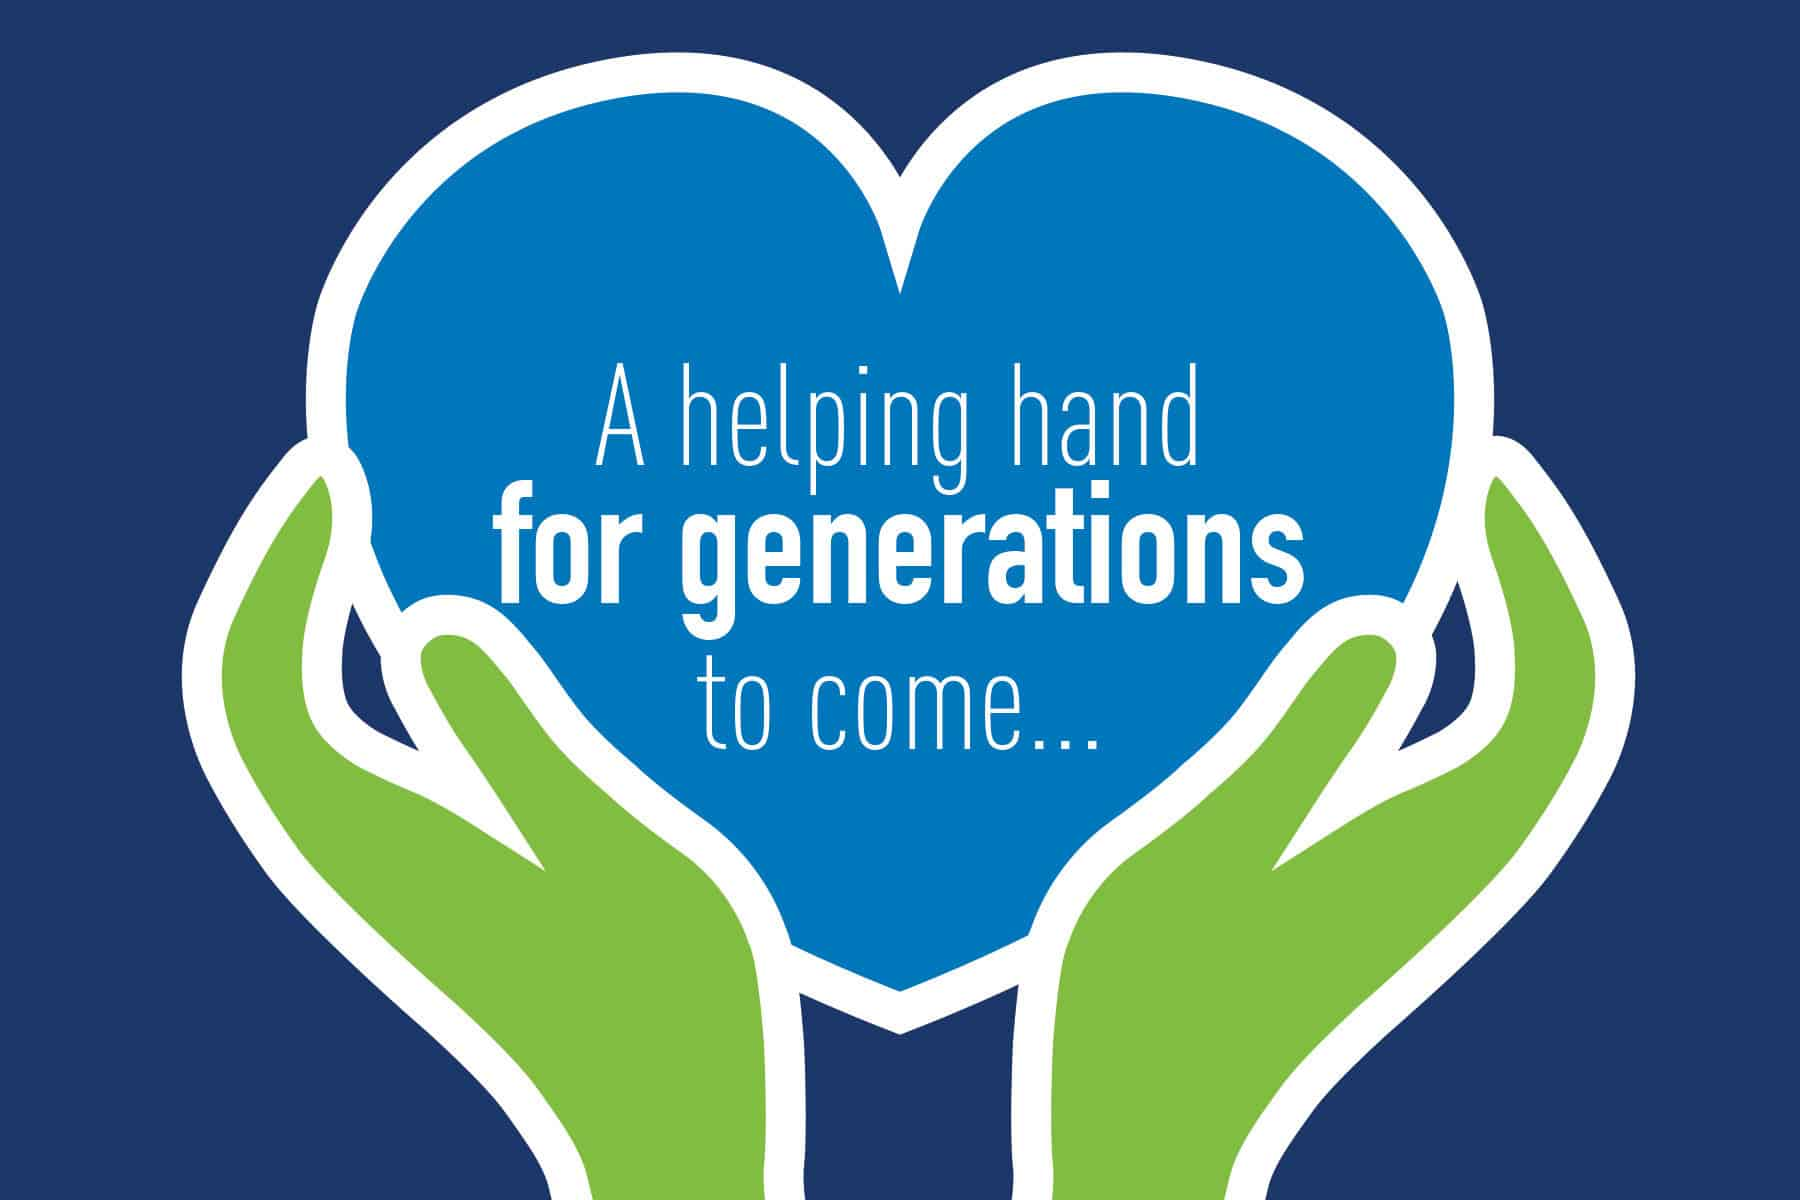 Friendship Centers Helping Hand for Generations